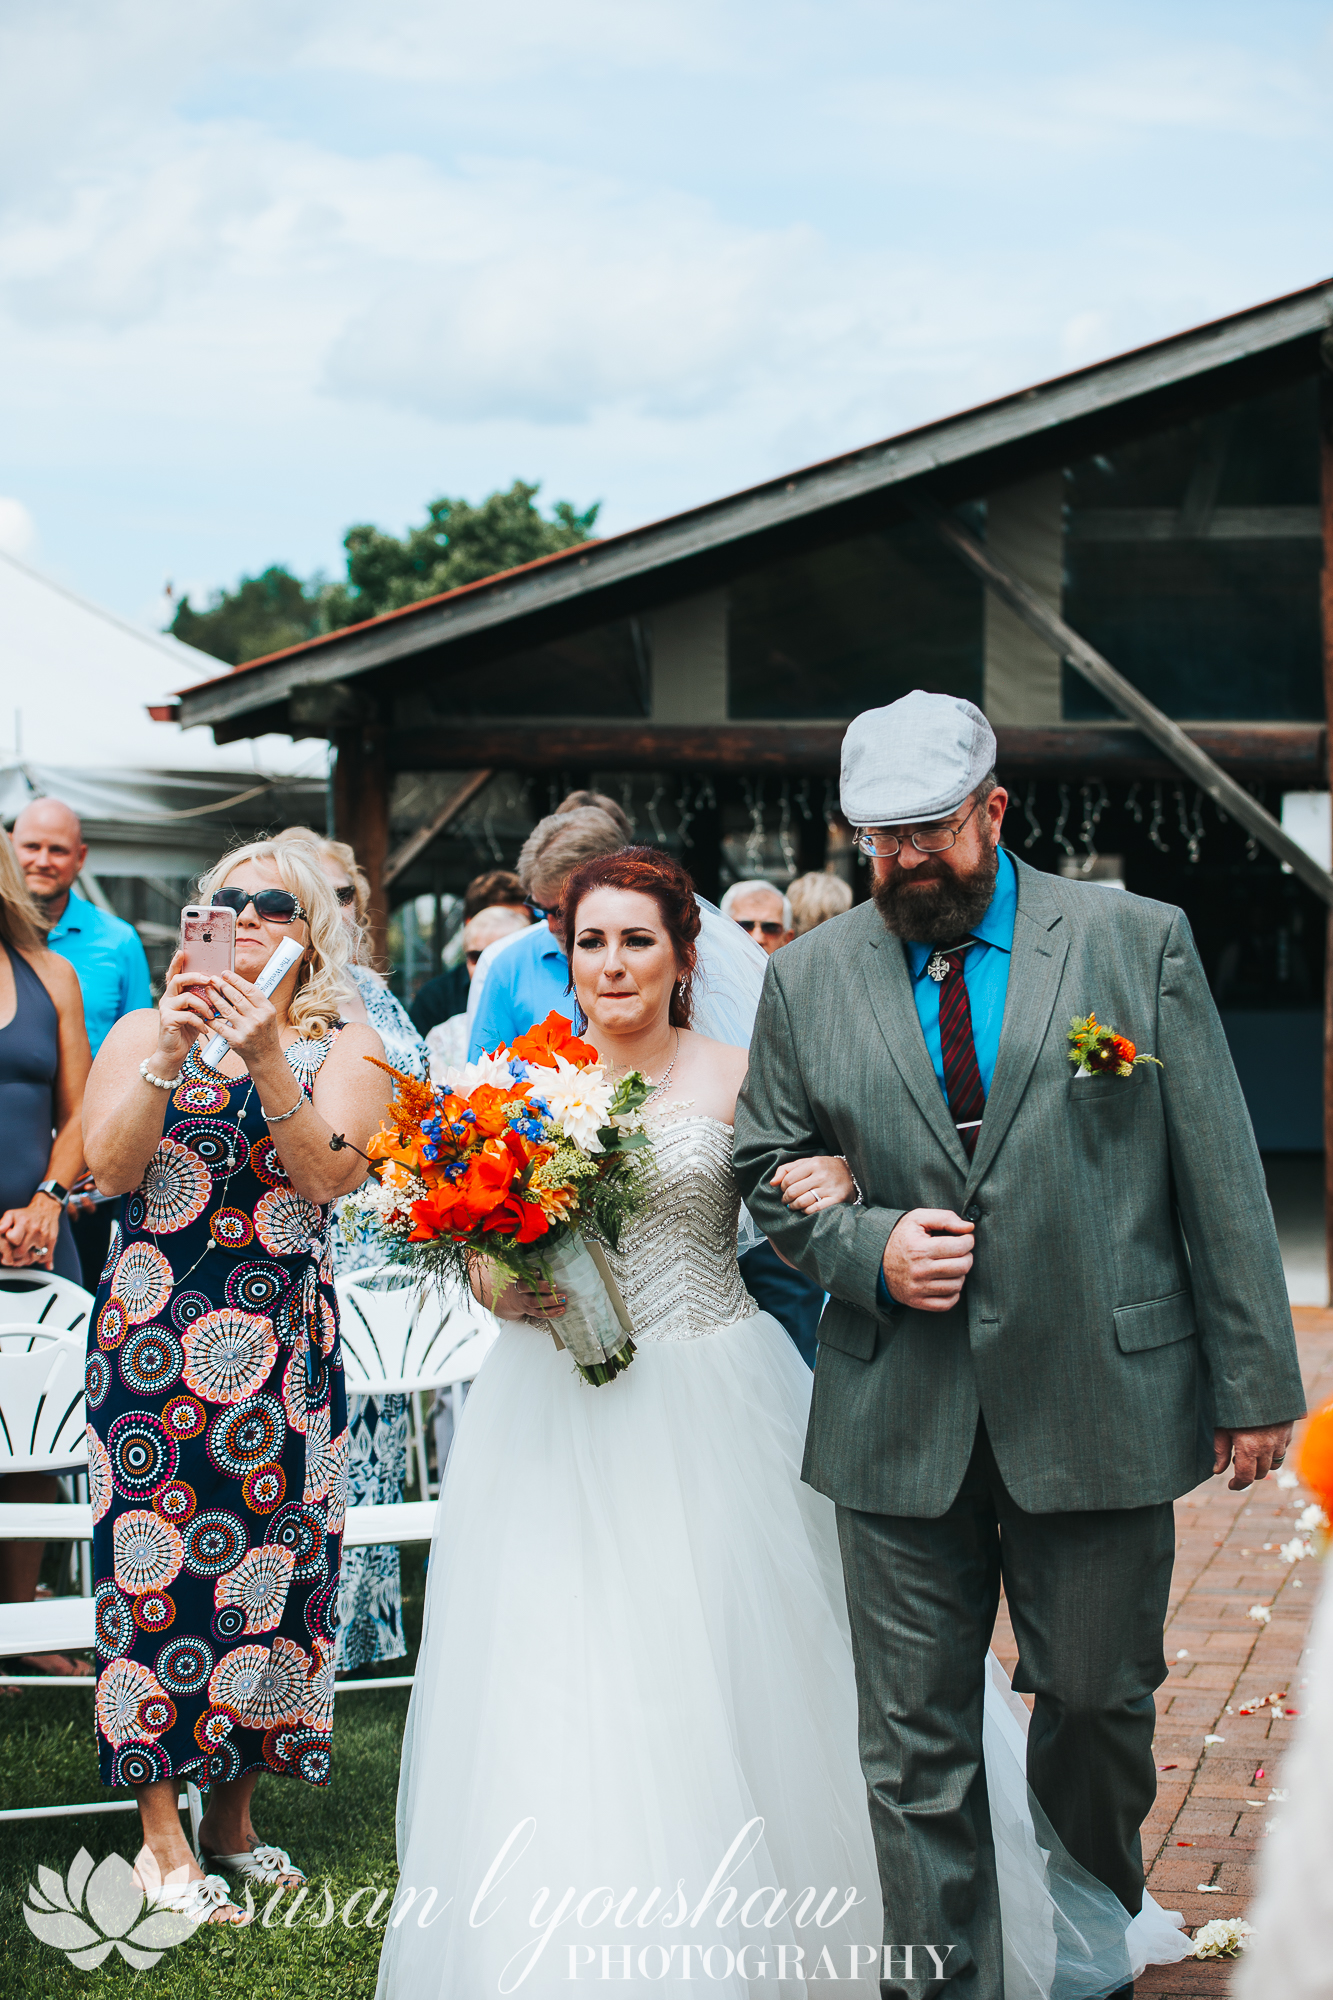 BLOG Kelly and DJ Roberts 08-25-2018 SLY Photography LLC-40.jpg